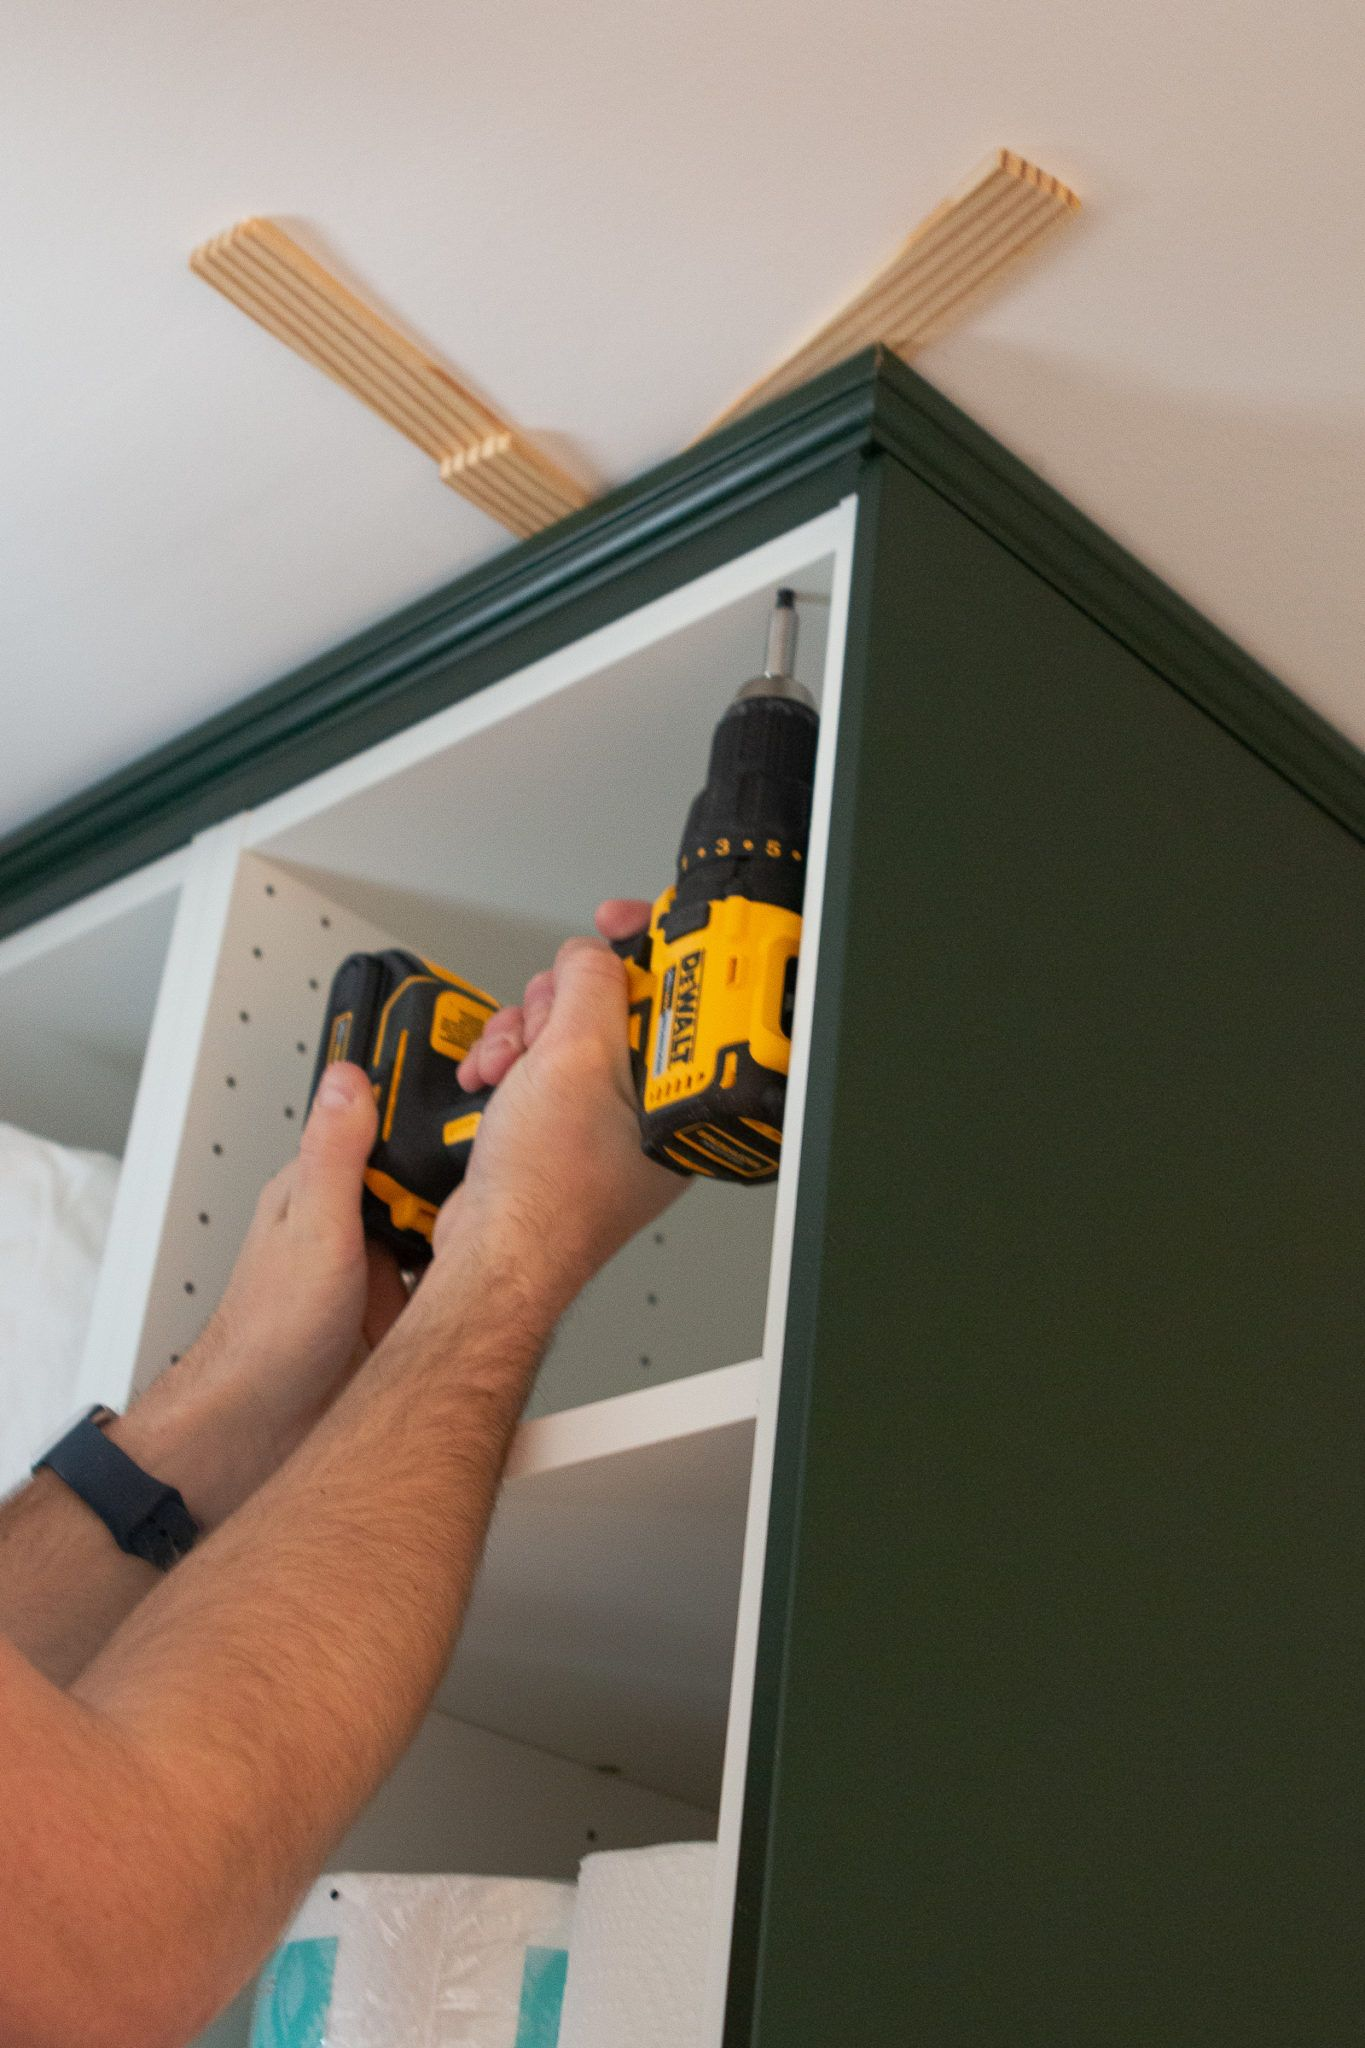 9 Tips To Install Ikea Kitchen Cabinets The Diy Playbook In 2020 Ikea Kitchen Cabinets Ikea Hack Kitchen Kitchen Cabinet Molding